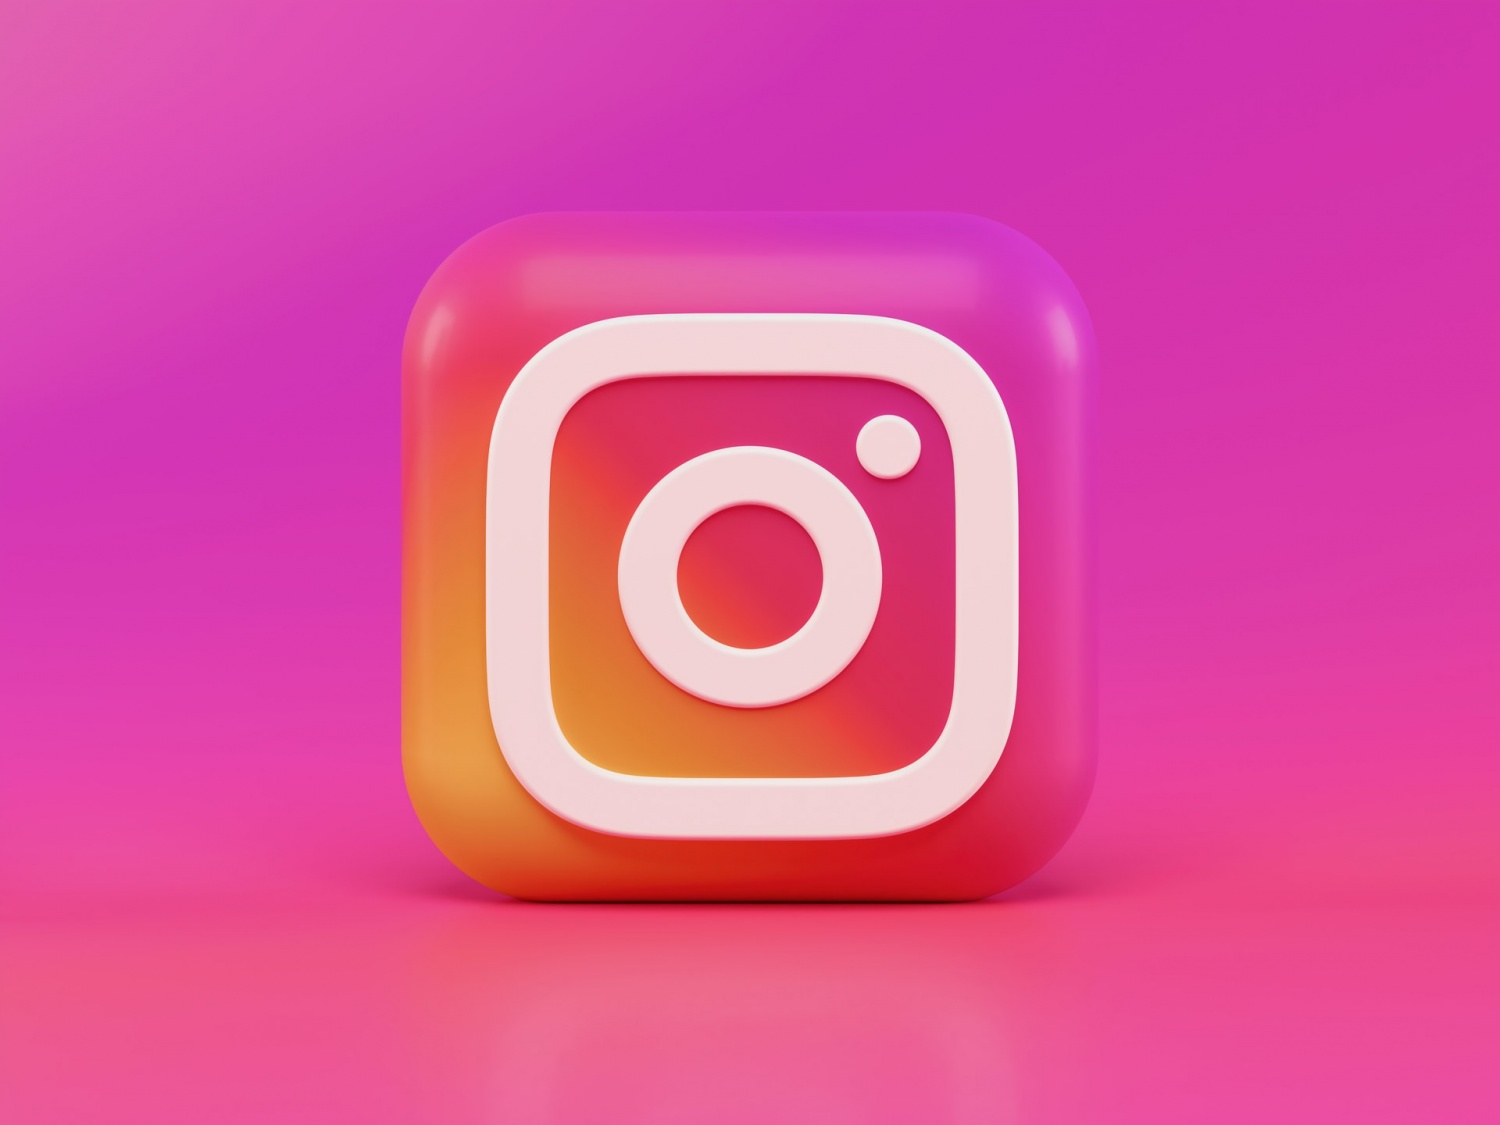 Instagram is Down: How to Check if it is Working?